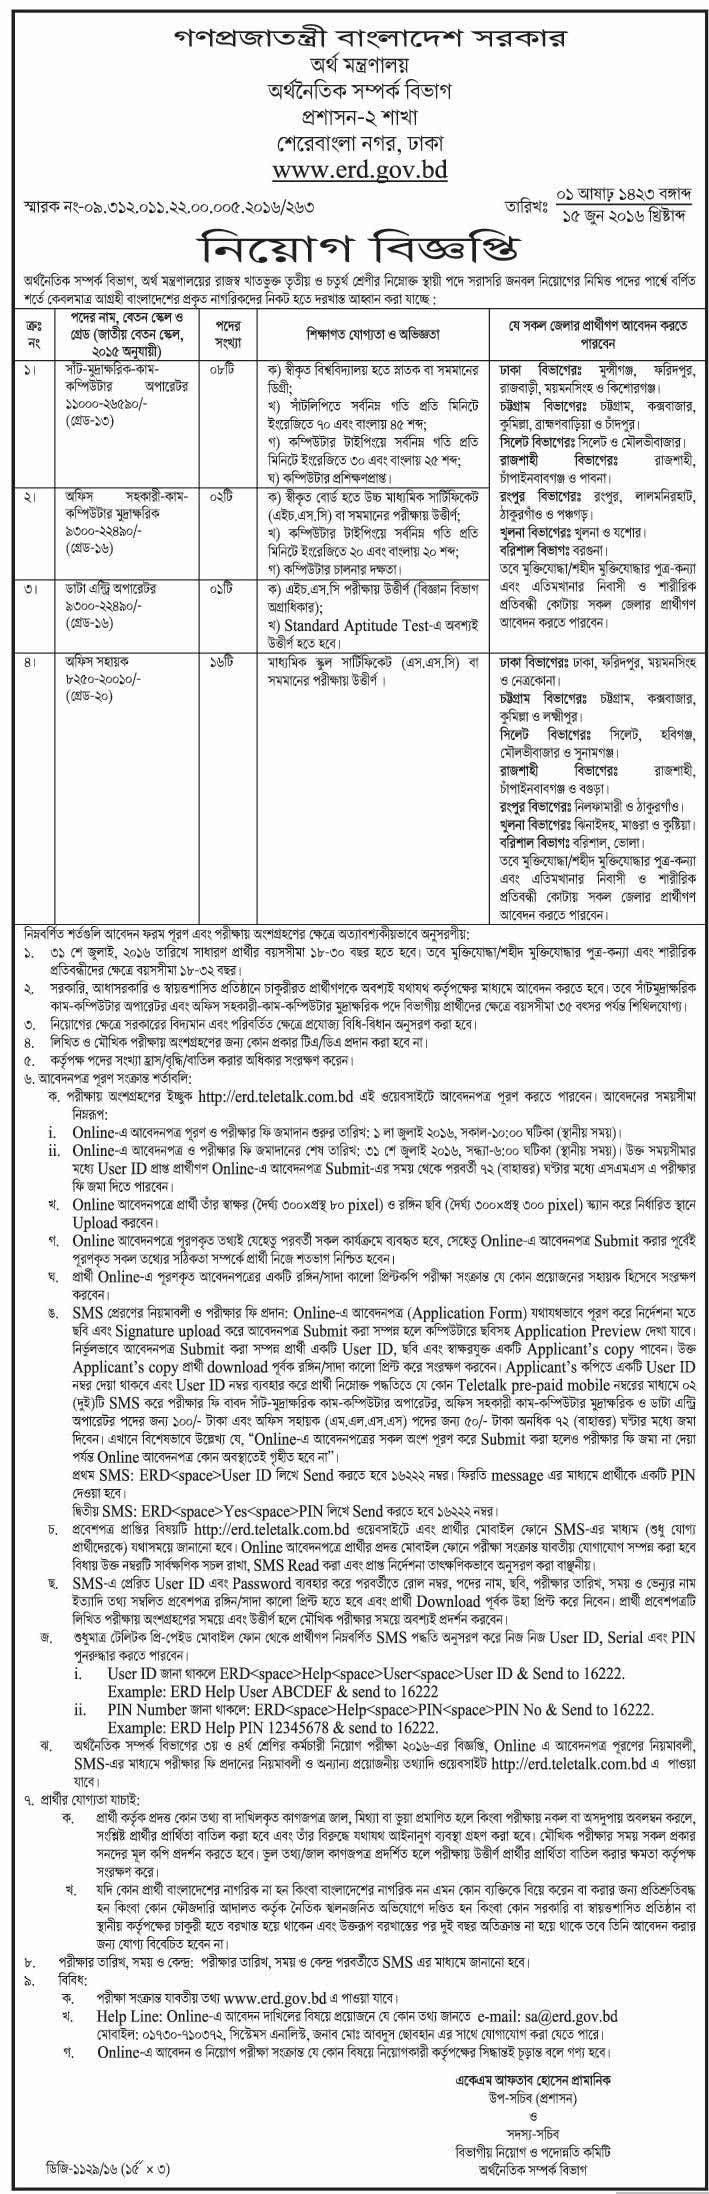 Bangladesh ministry of finance job circular